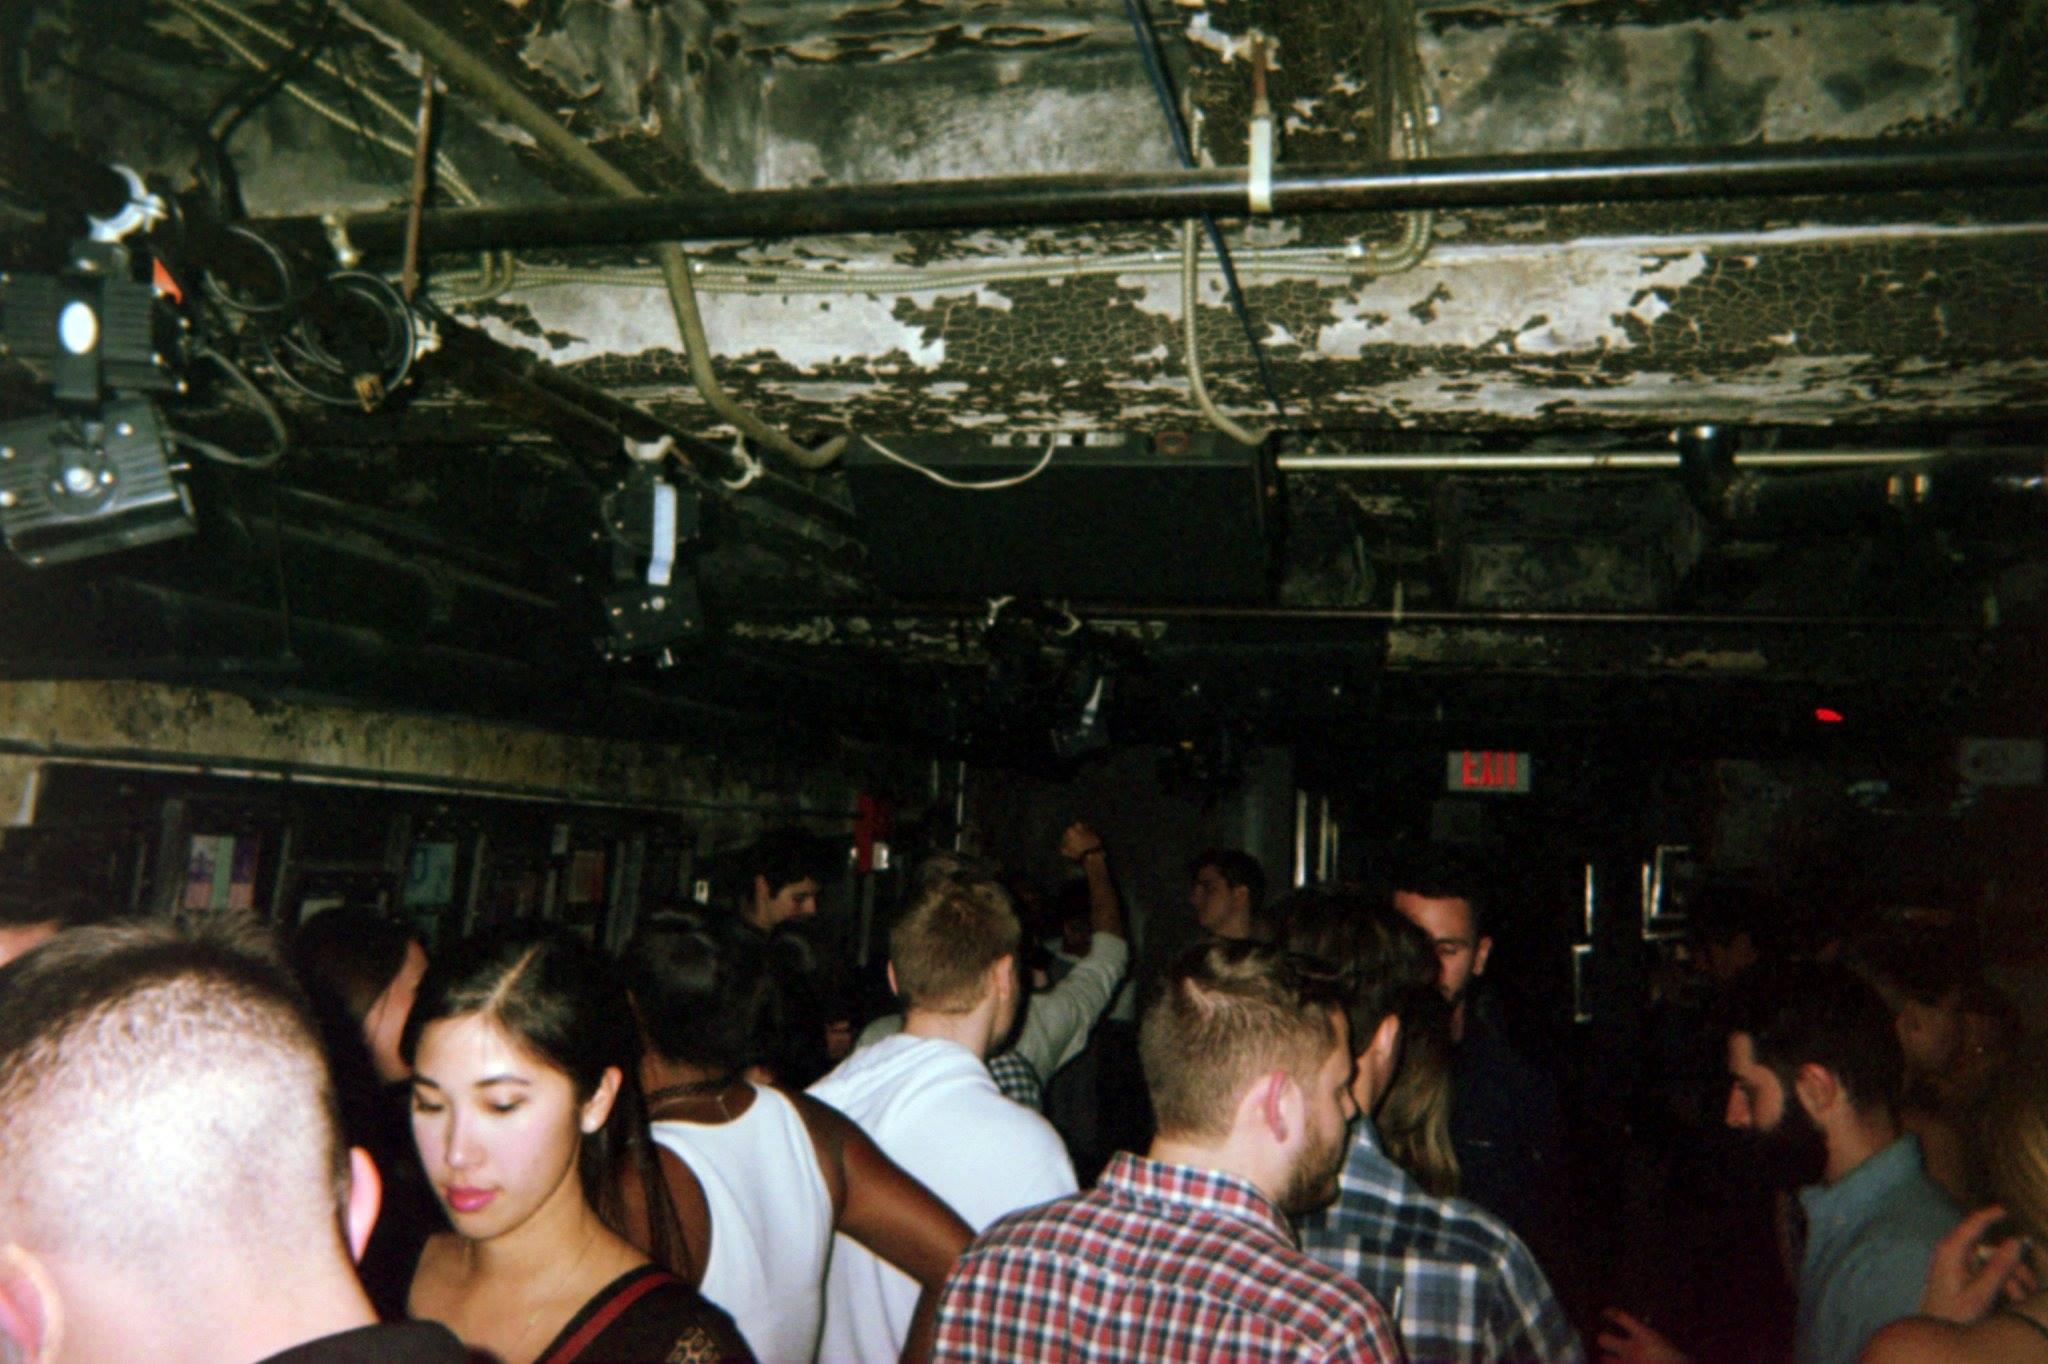 Image from DMV Deep: The Residency party at Backbar